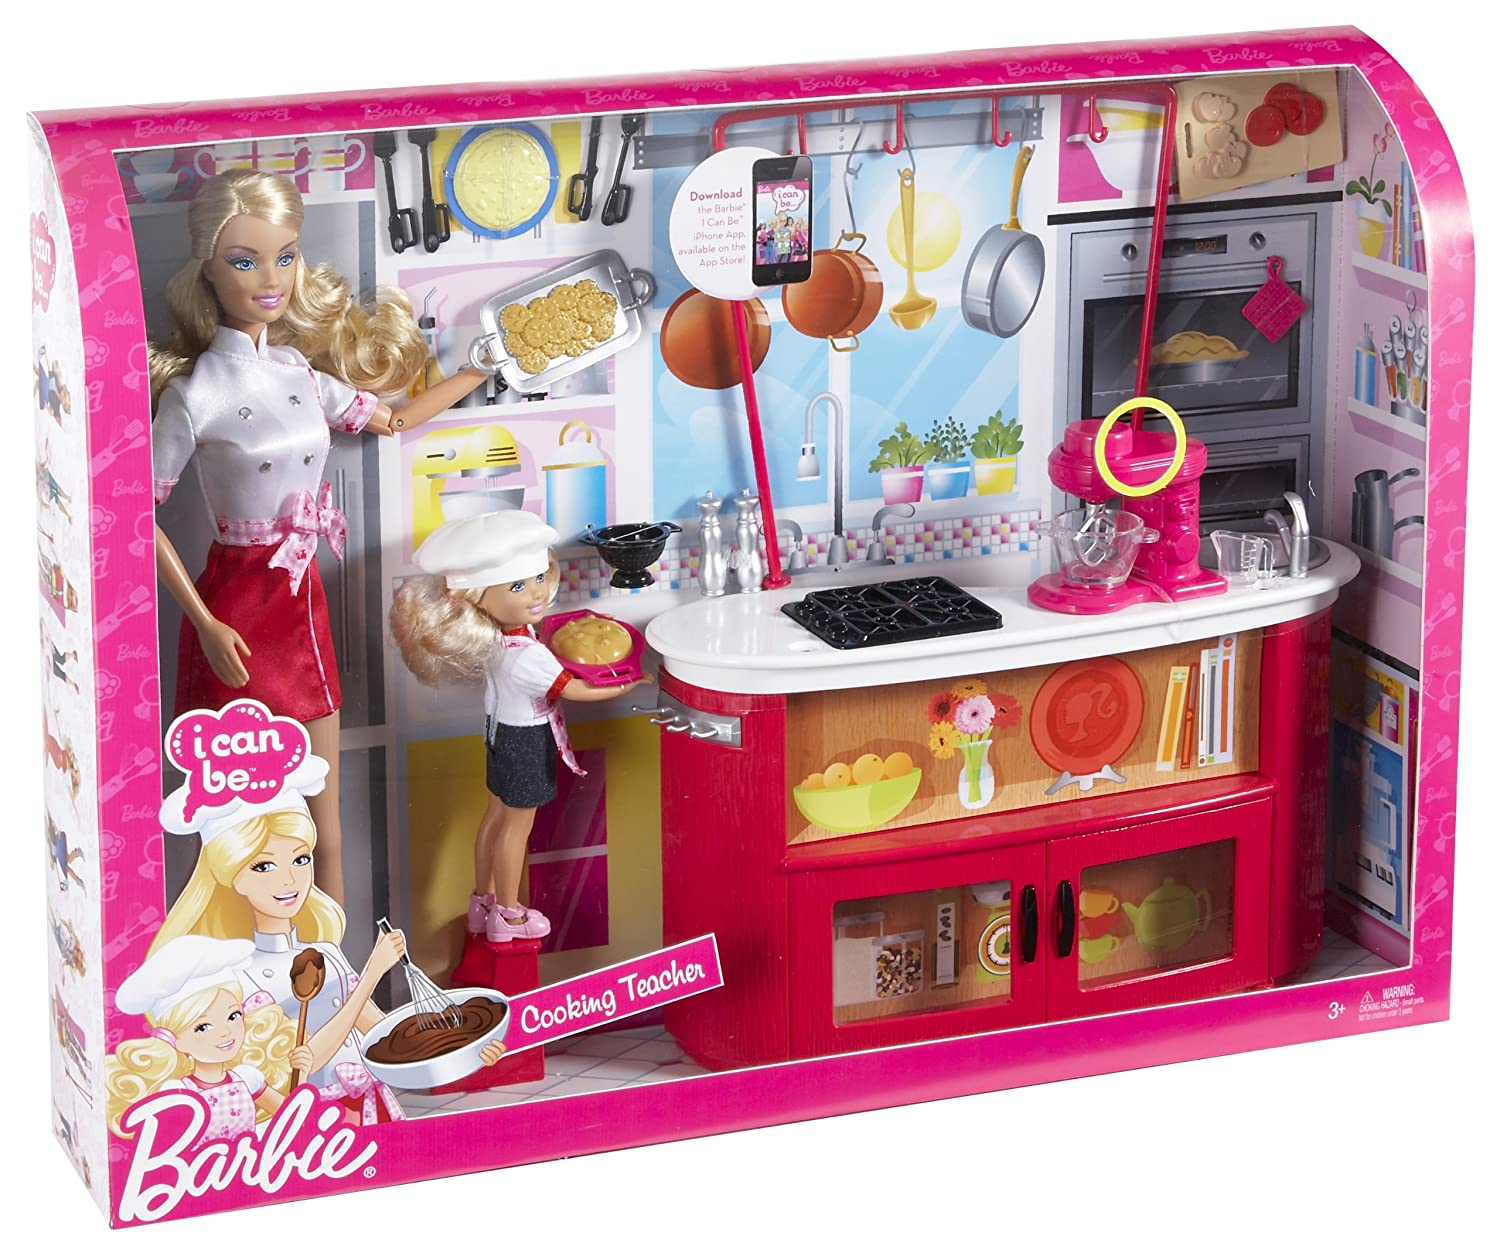 image result for barbie i can be cooking teacher doll playset. Black Bedroom Furniture Sets. Home Design Ideas